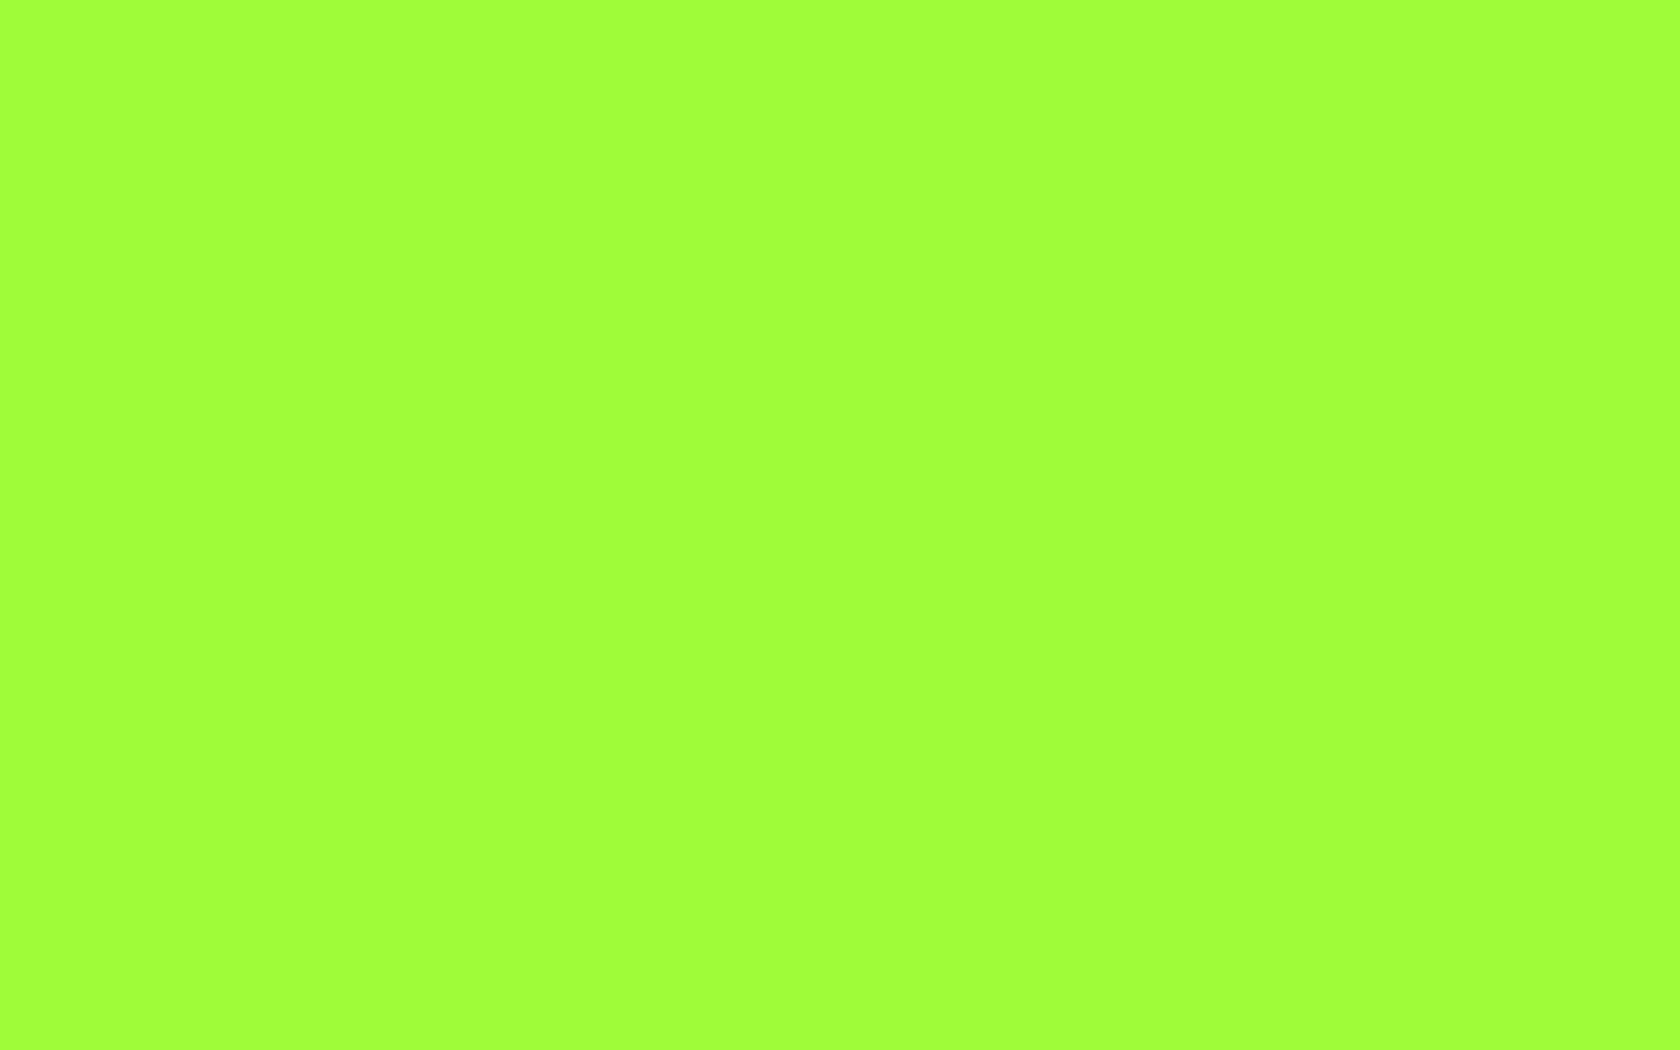 lime color background - photo #1